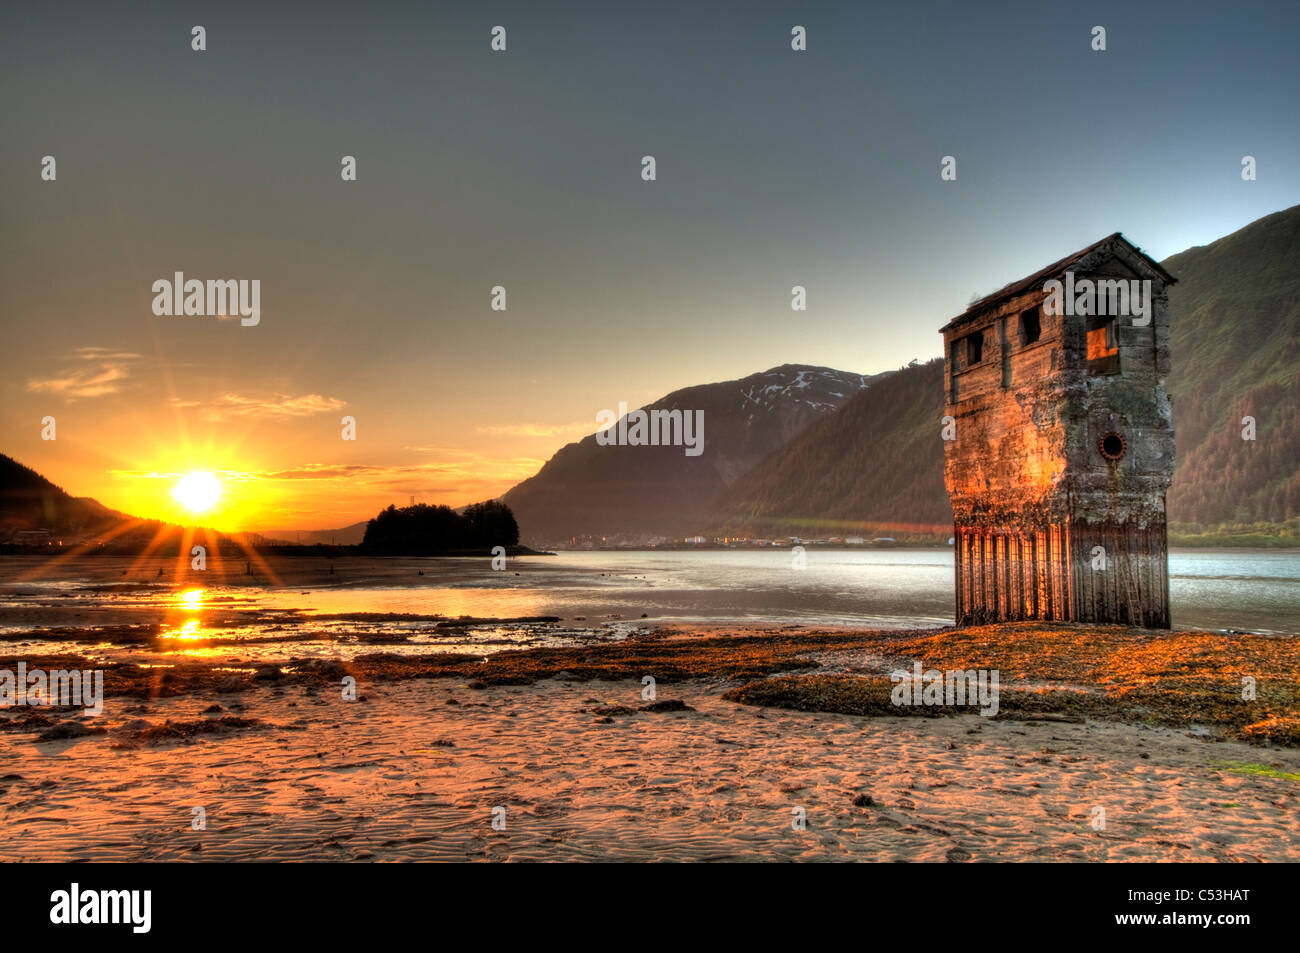 View of an old placer mining operation on the shore of Douglas Island at sunset, across from Juneau, Alaska, HDR. Stock Photo